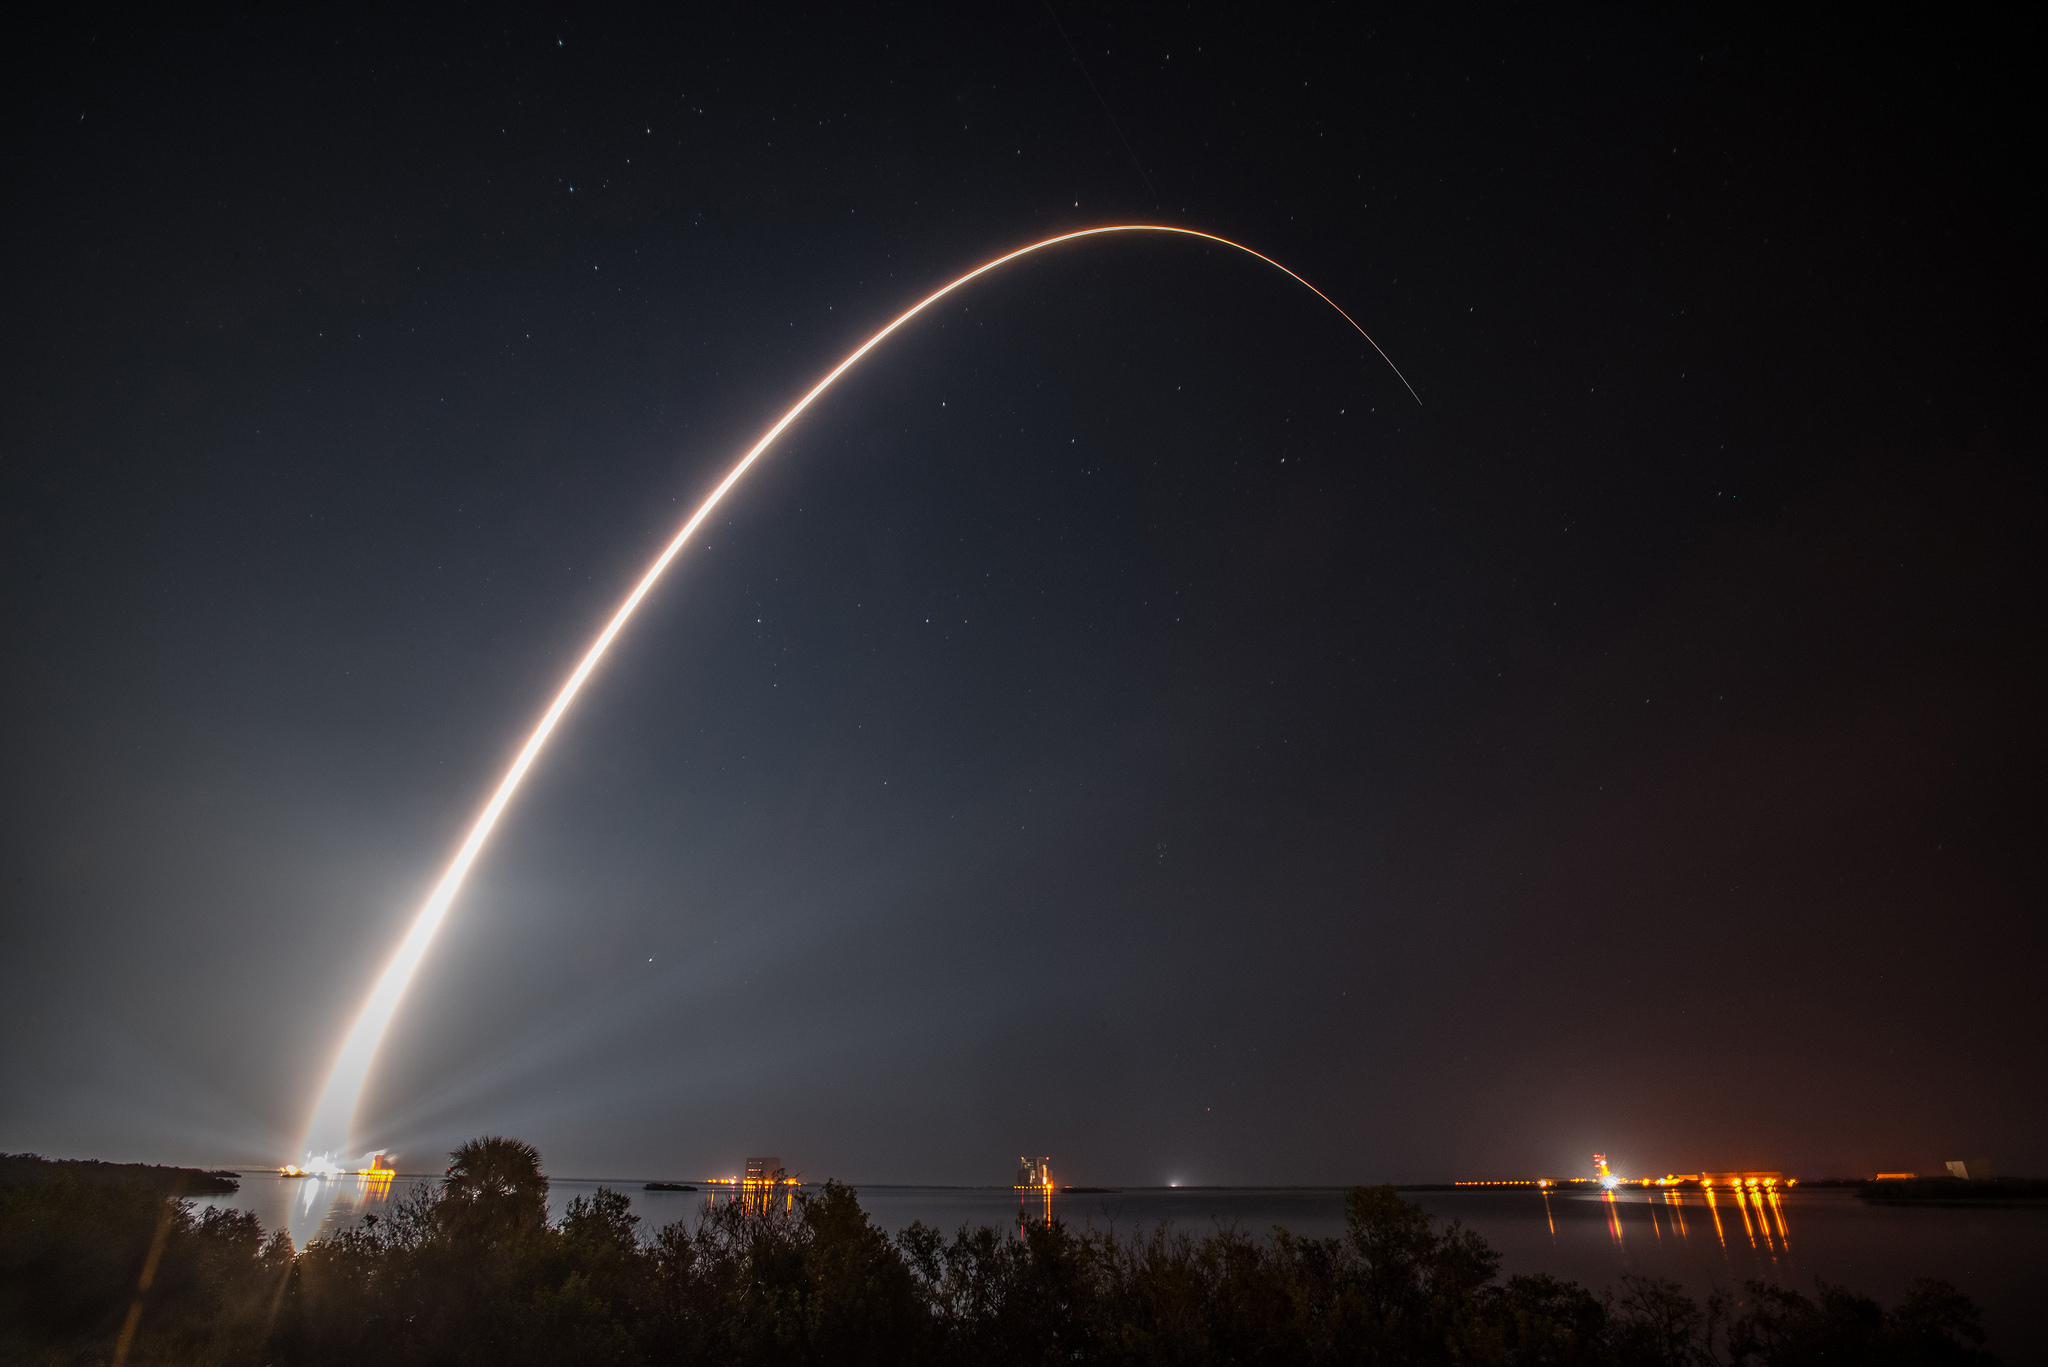 GOES-R lifted off on November 19, 2016 from Cape Canaveral Air Force Station's Space Launch Complex 41, aboard a United Launch Alliance Atlas V 541 rocket. GOES-R is the first of four satellites to be launched for NOAA in a new and advanced series of spacecraft. Once in geostationary orbit, it will be known as GOES-16.